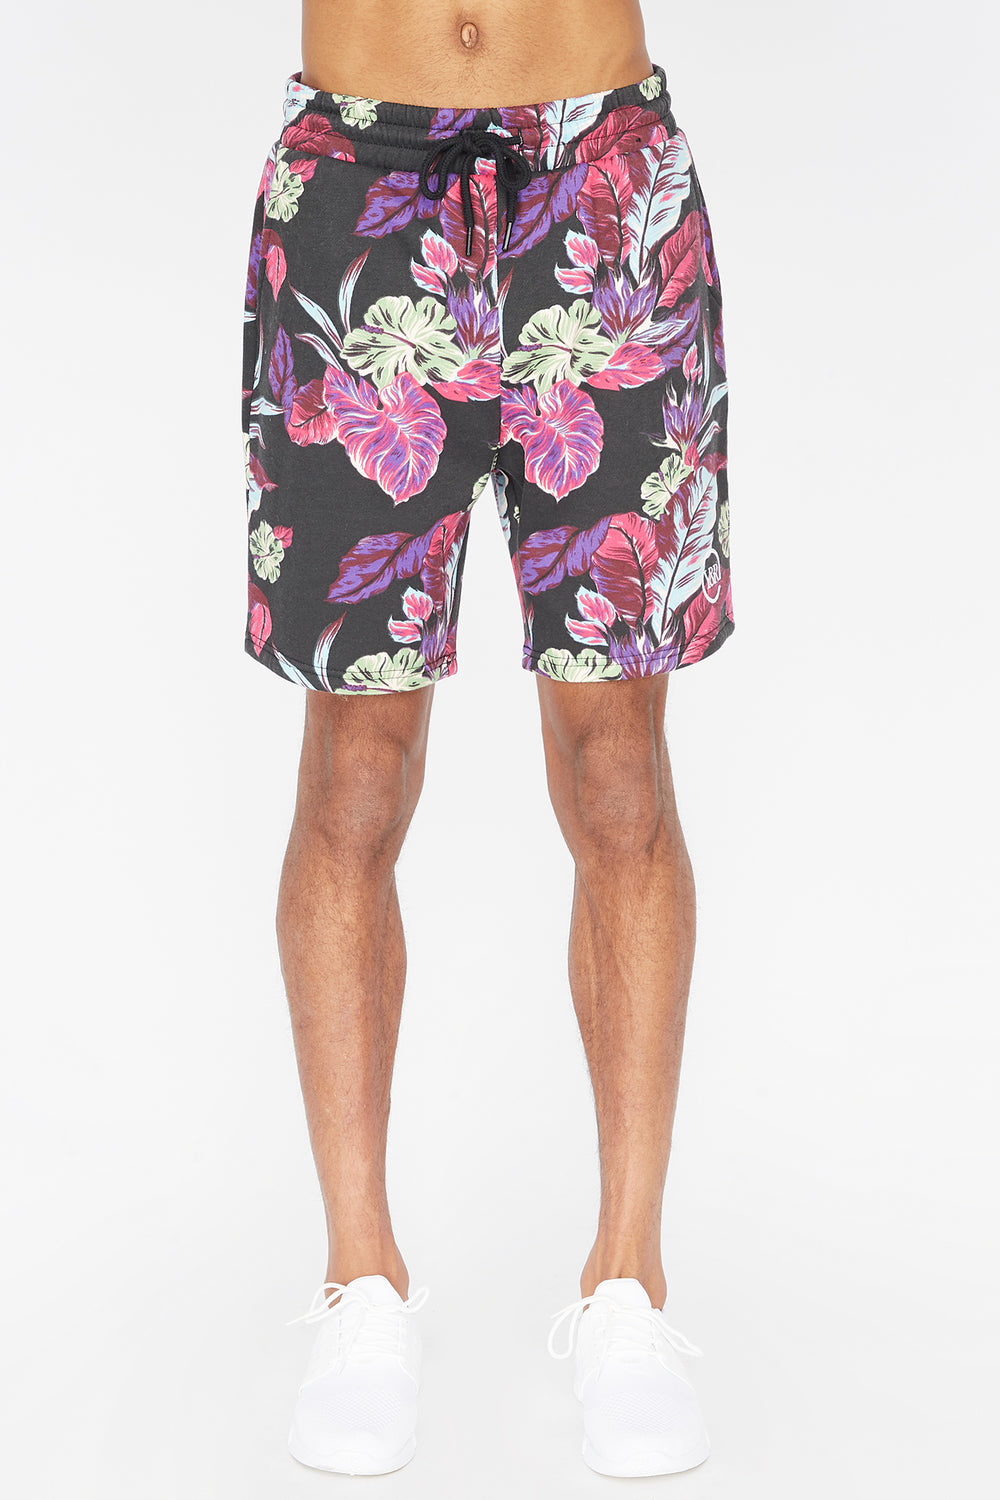 Young & Reckless Mens Neon Floral Shorts Black